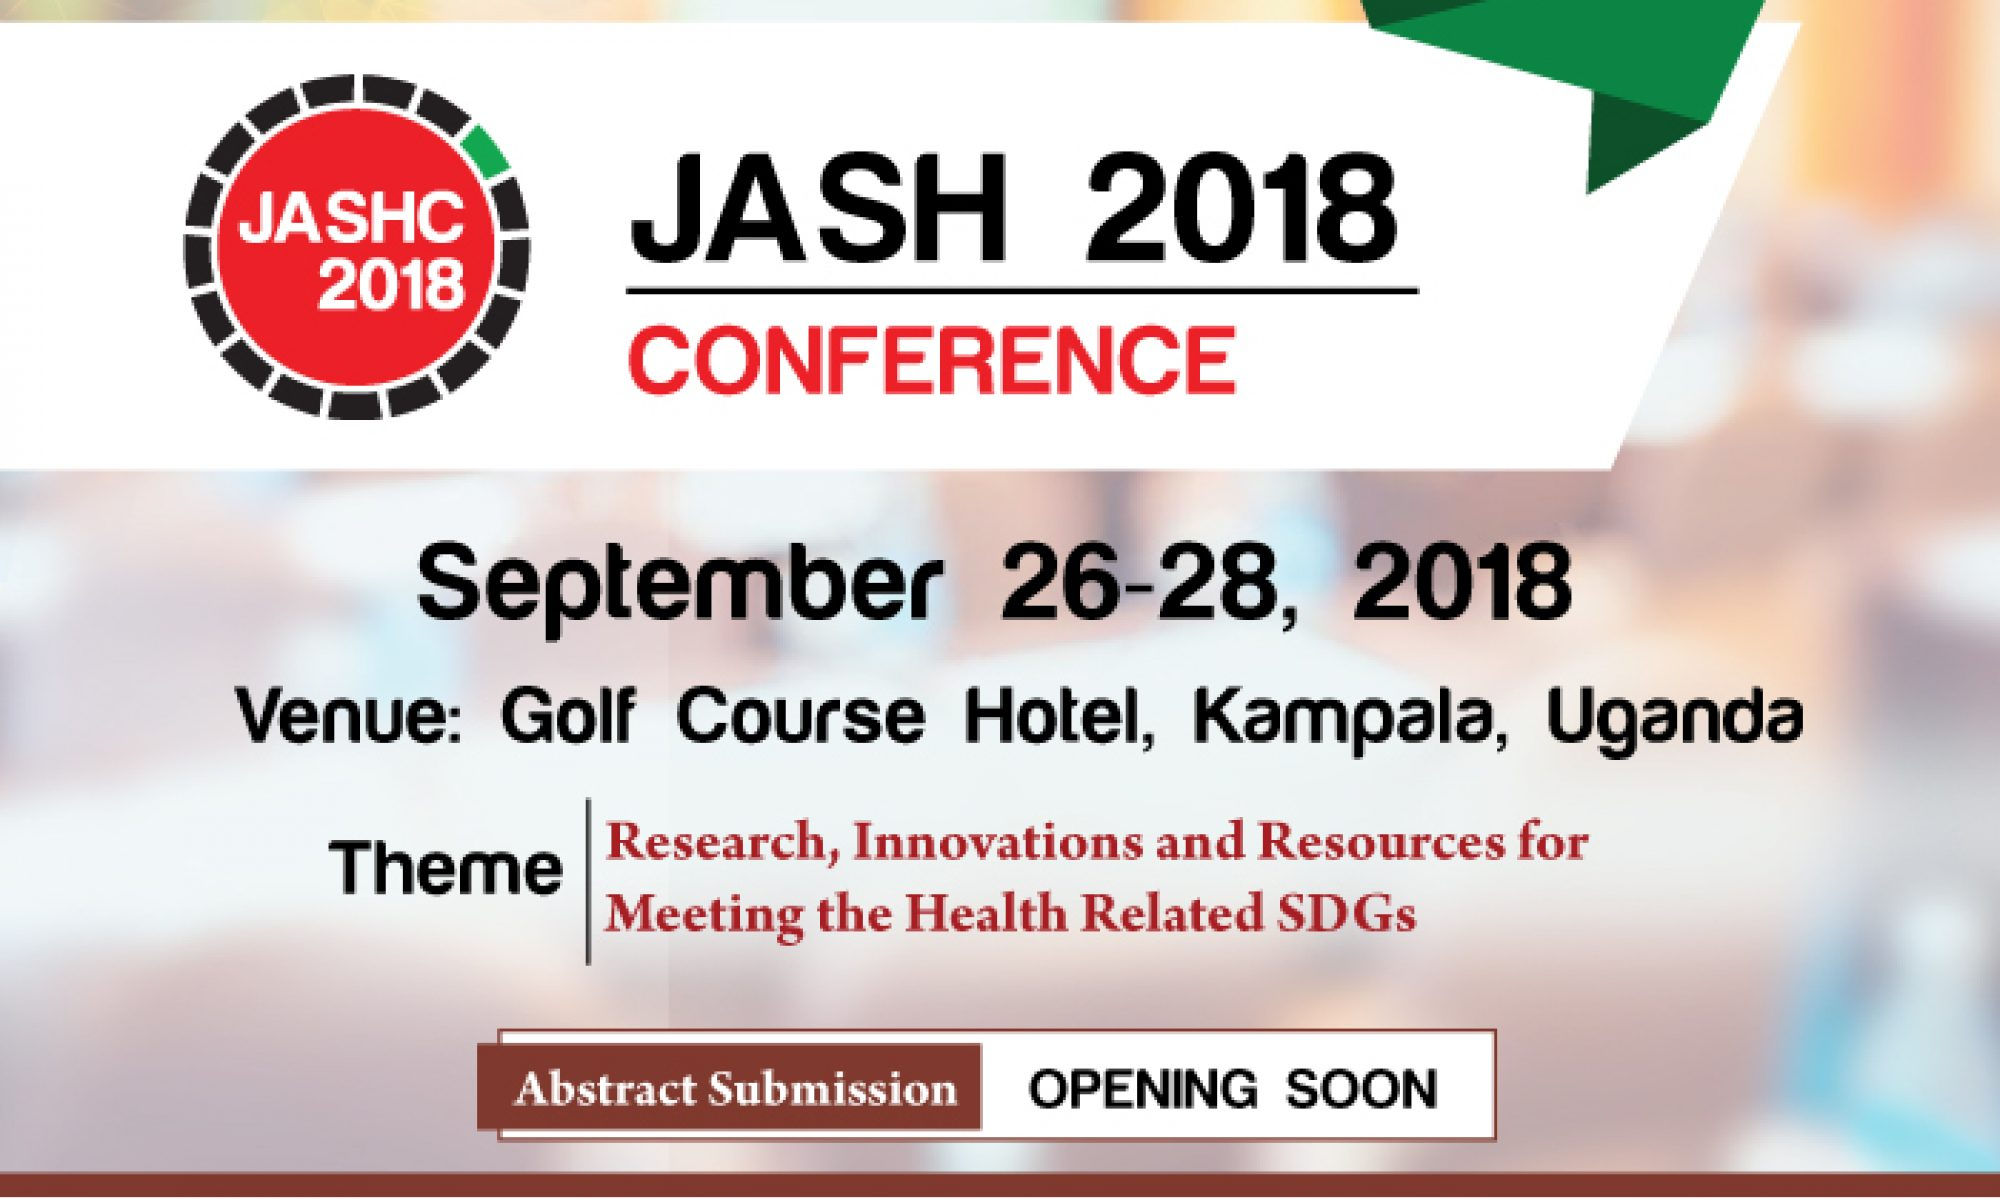 JOINT ANNUAL SCIENTIFIC HEALTH (JASH) CONFERENCE 2018